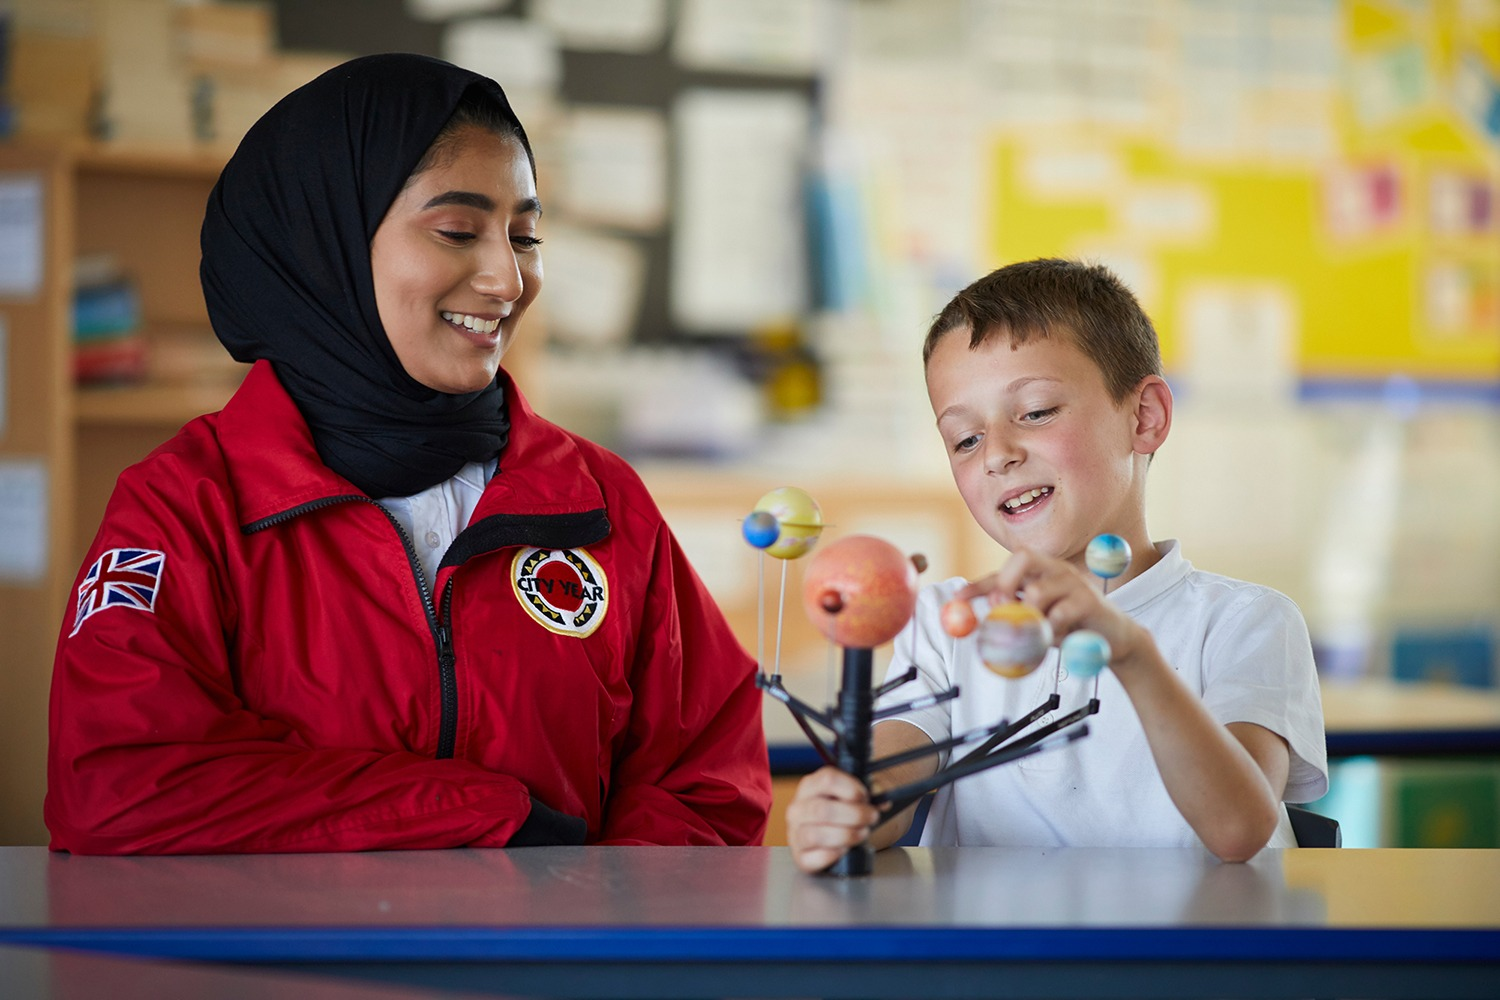 Female volunteer mentor in a hijab working with a pupil on a science project